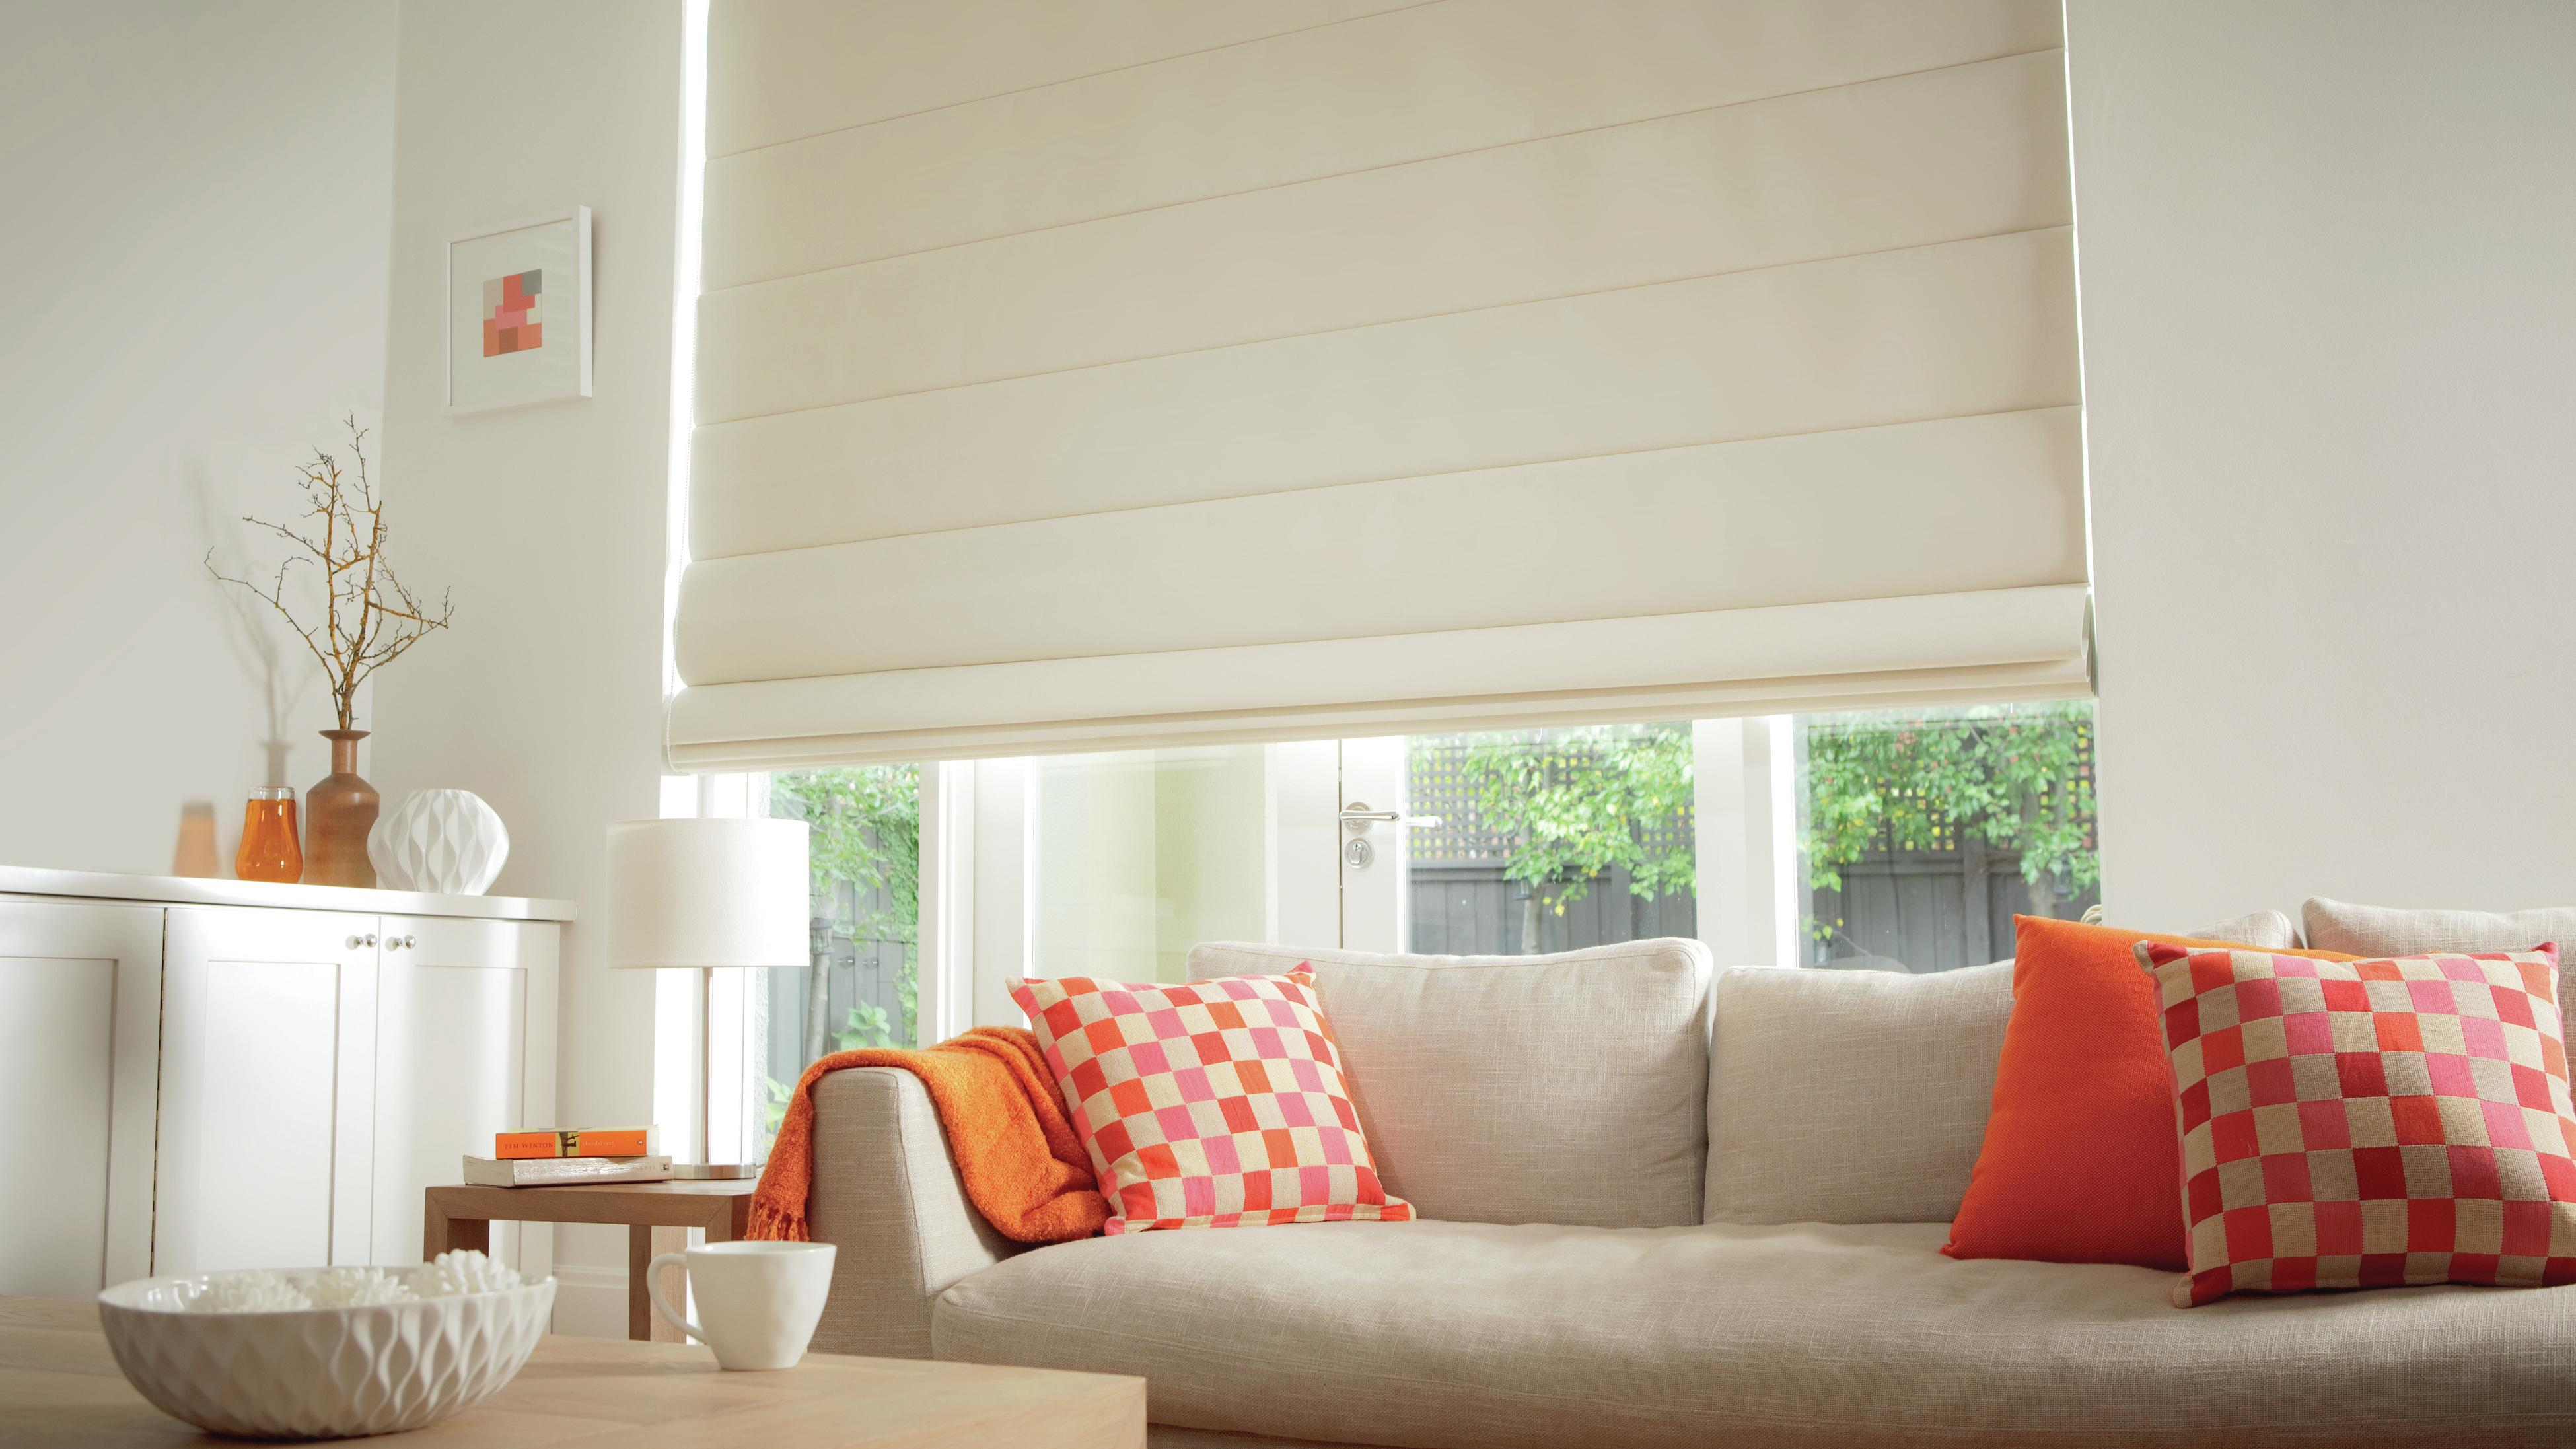 A living area with a cream couch, orange cushions and white Roman blinds.